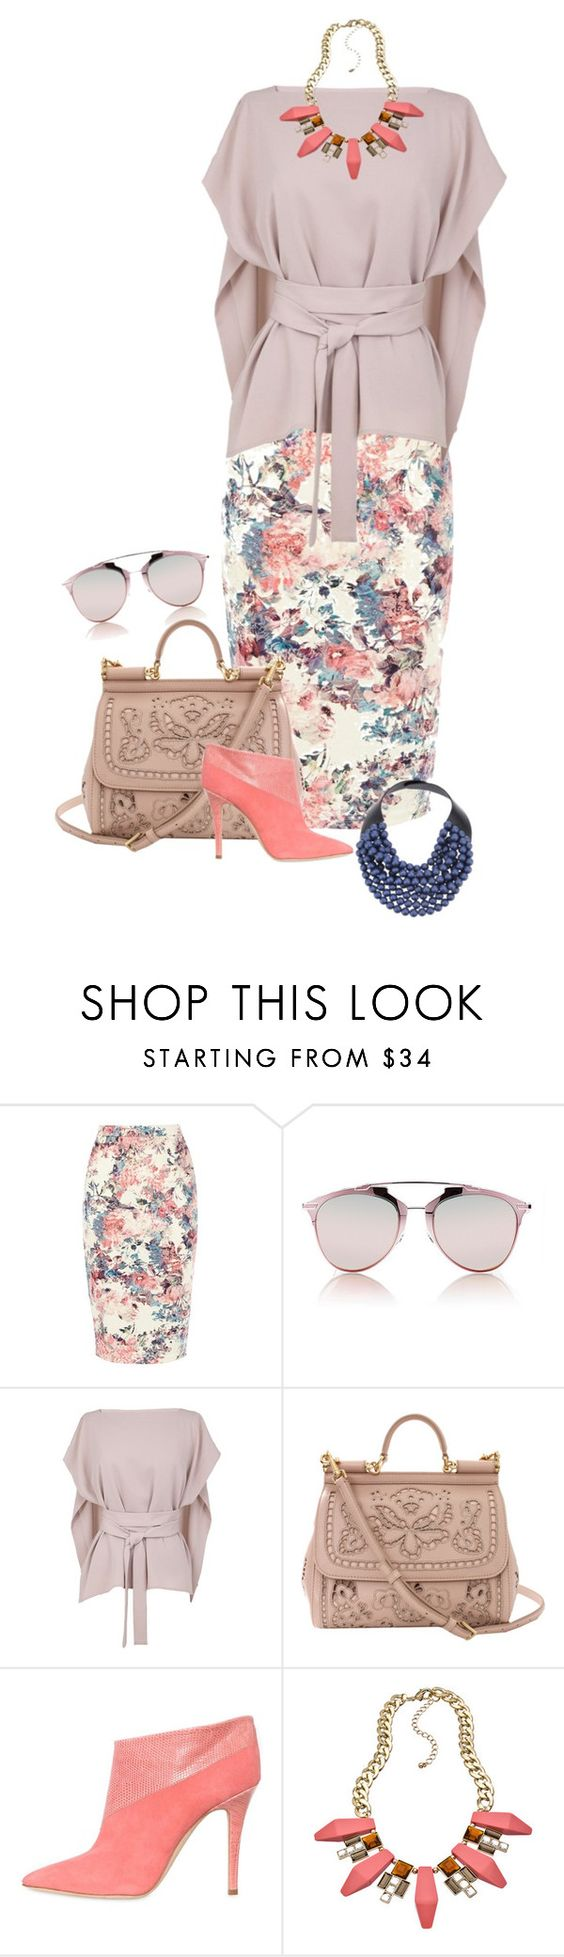 """""""It's Always Summer Somewhere"""" by clothes-wise ❤ liked on Polyvore featuring мода, Warehouse, Christian Dior, TIBI, Dolce&Gabbana, Malone Souliers, Blu Bijoux, Rossana Fani, pretty и polyvorecommunity"""